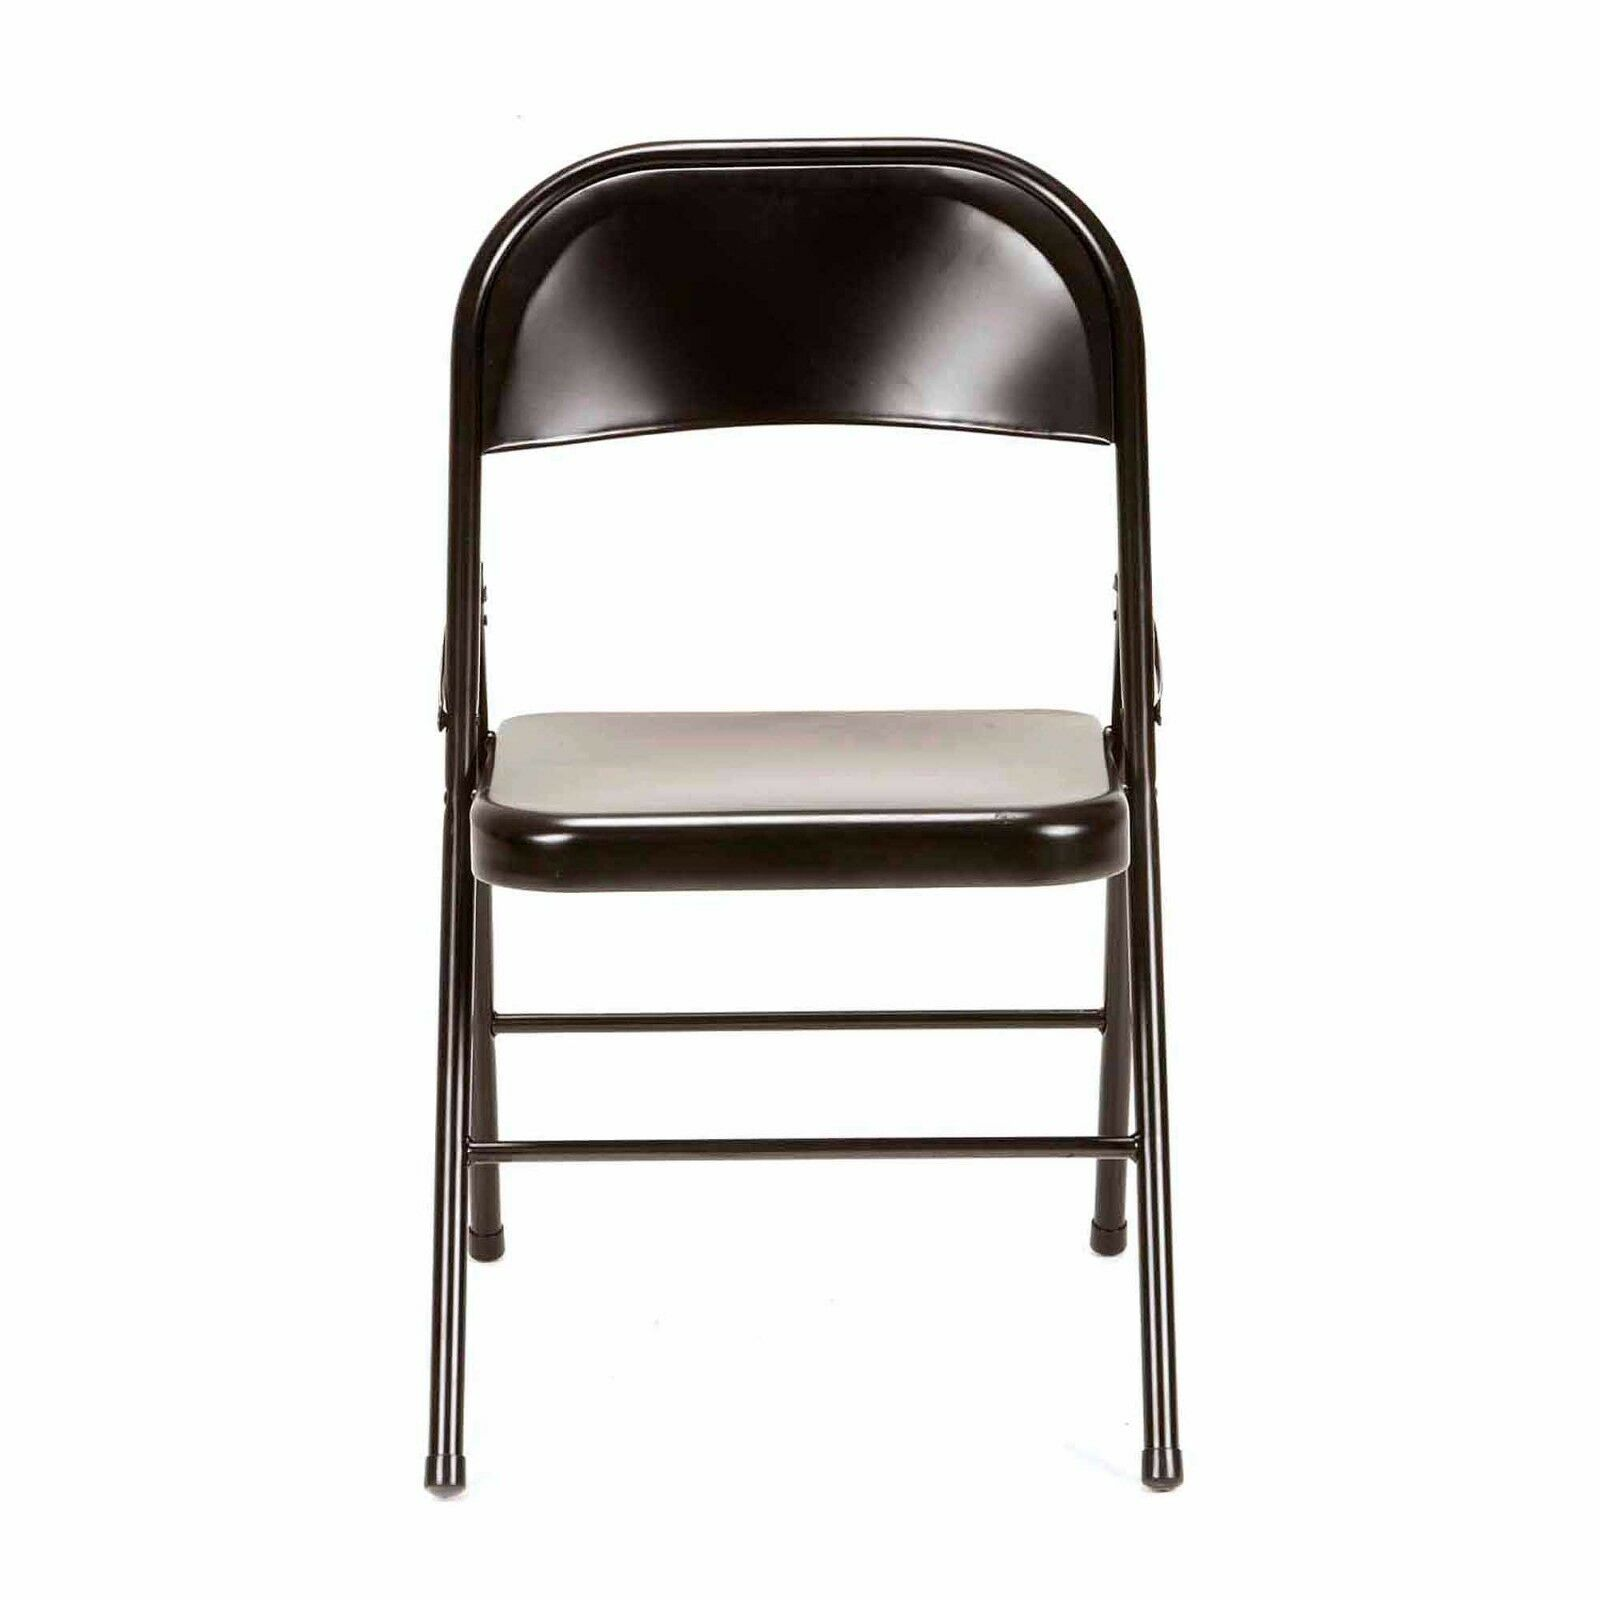 armless folding chair home office desk chairs uk set of 4 mainstays black metal finish traditional steel